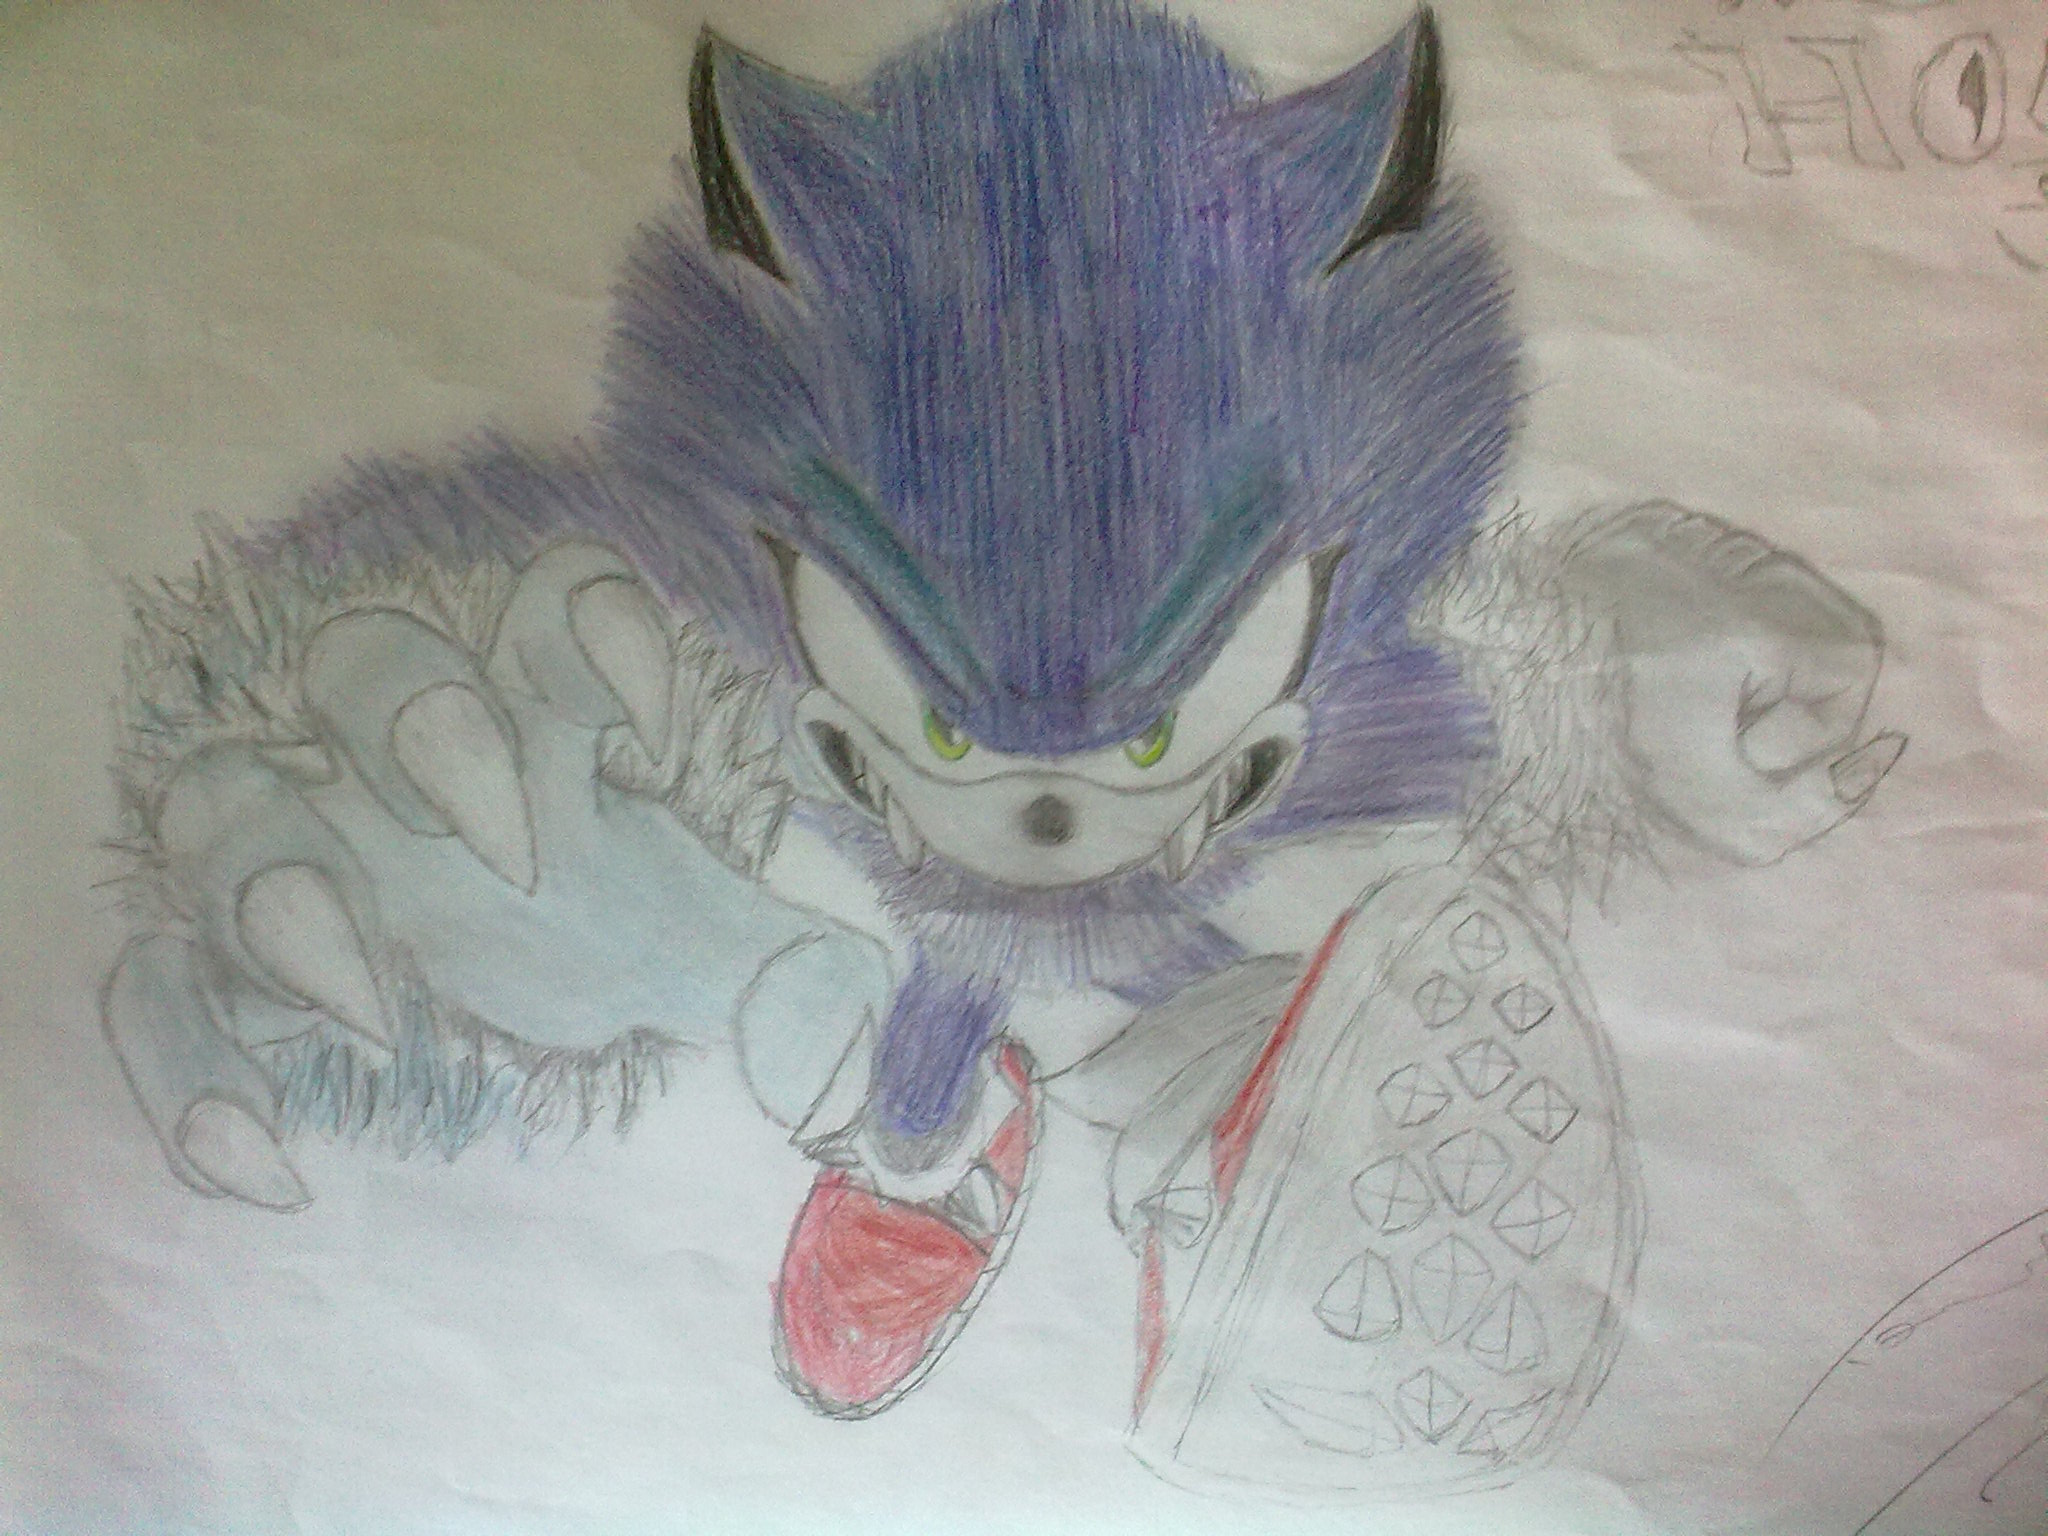 Shadow And Sonic Images Sonic The Werehog Hd Wallpaper And